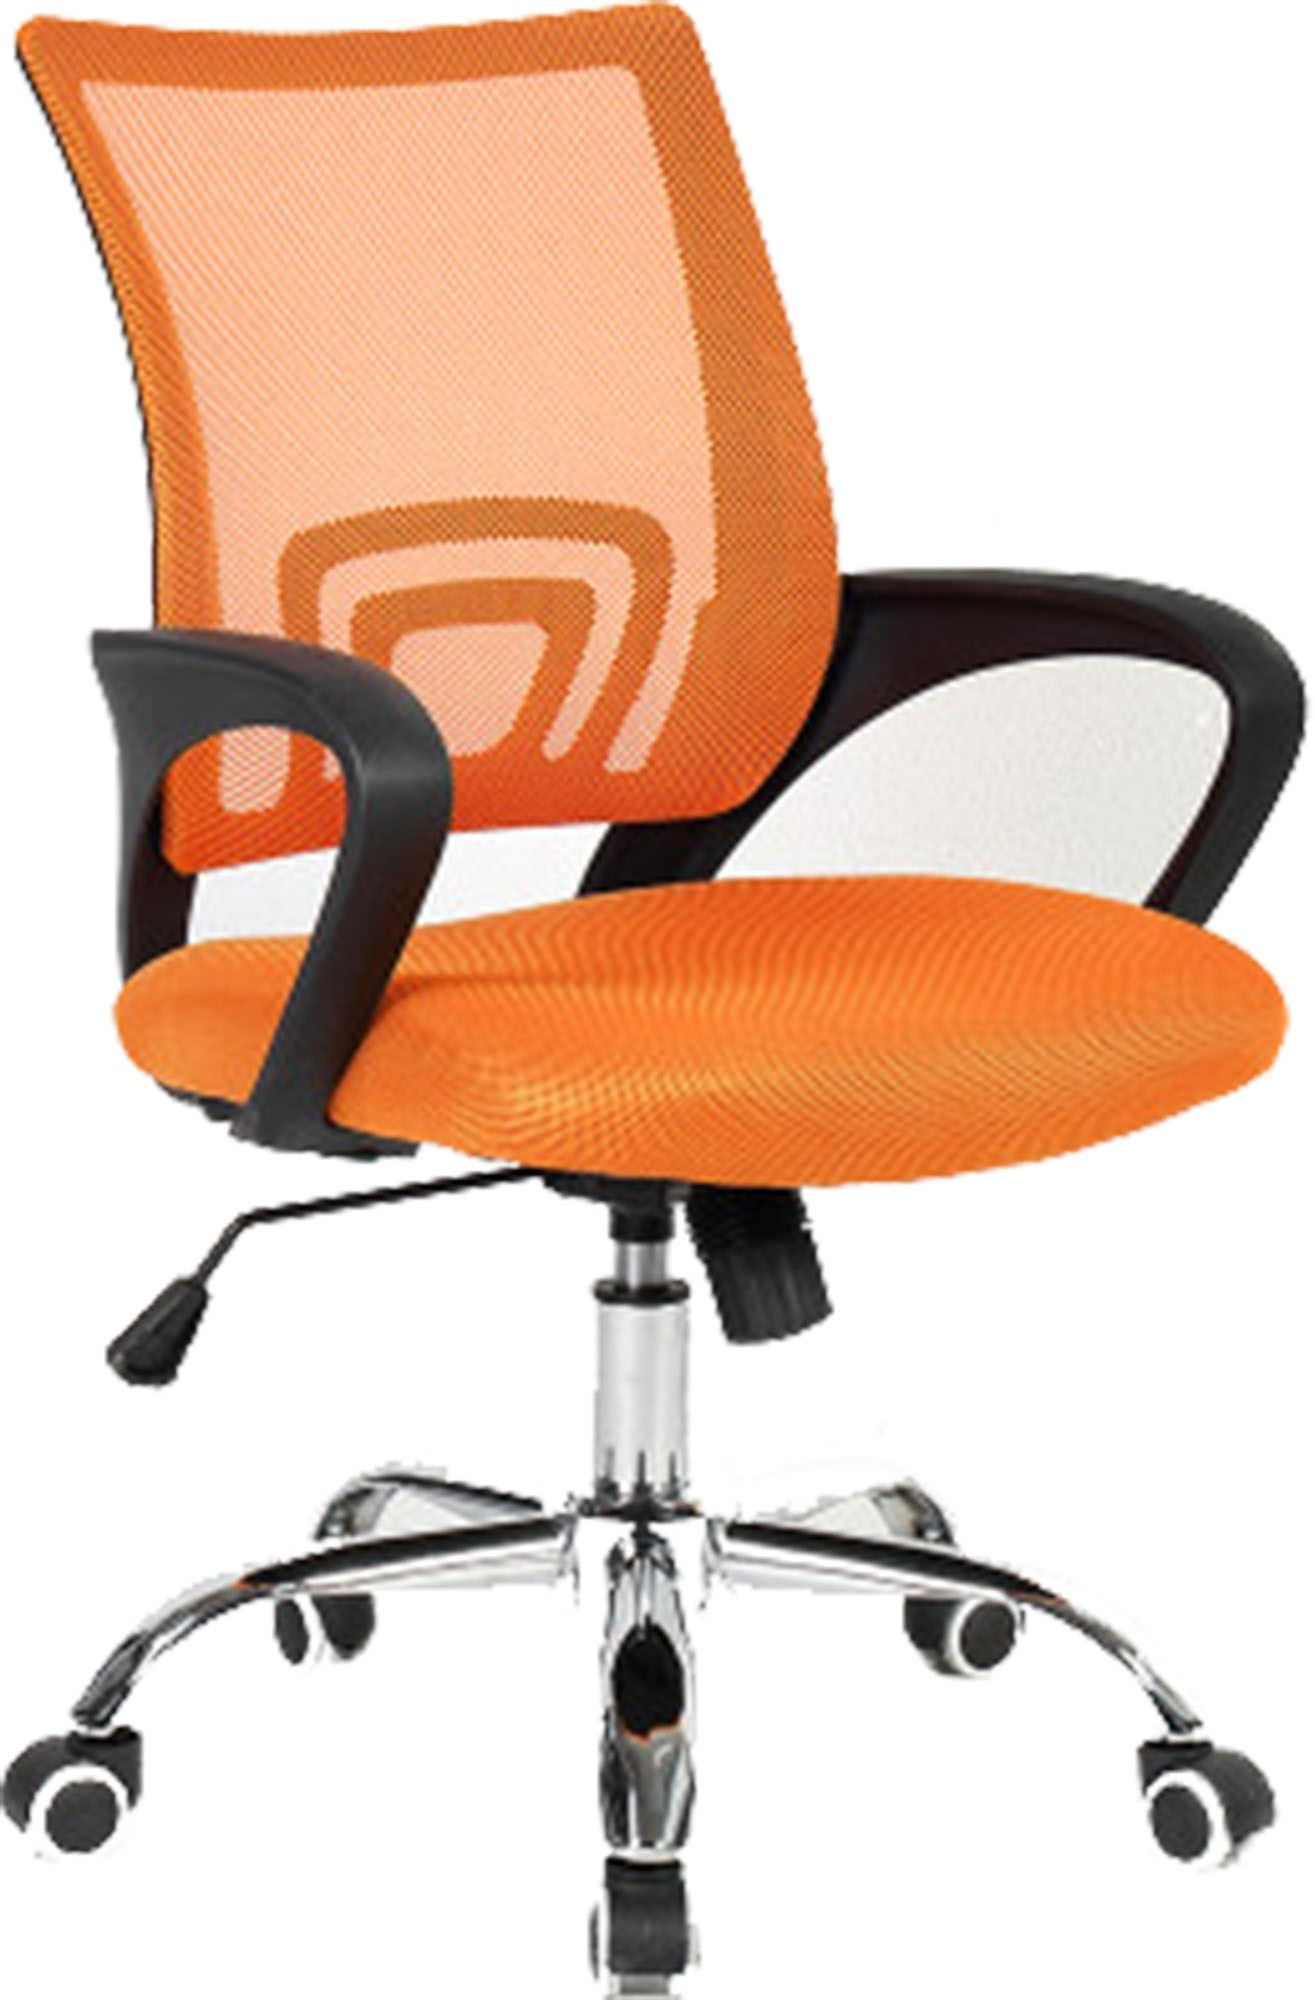 Best ideas about Orange Office Chair . Save or Pin Wayner fice Chair Orange Now.